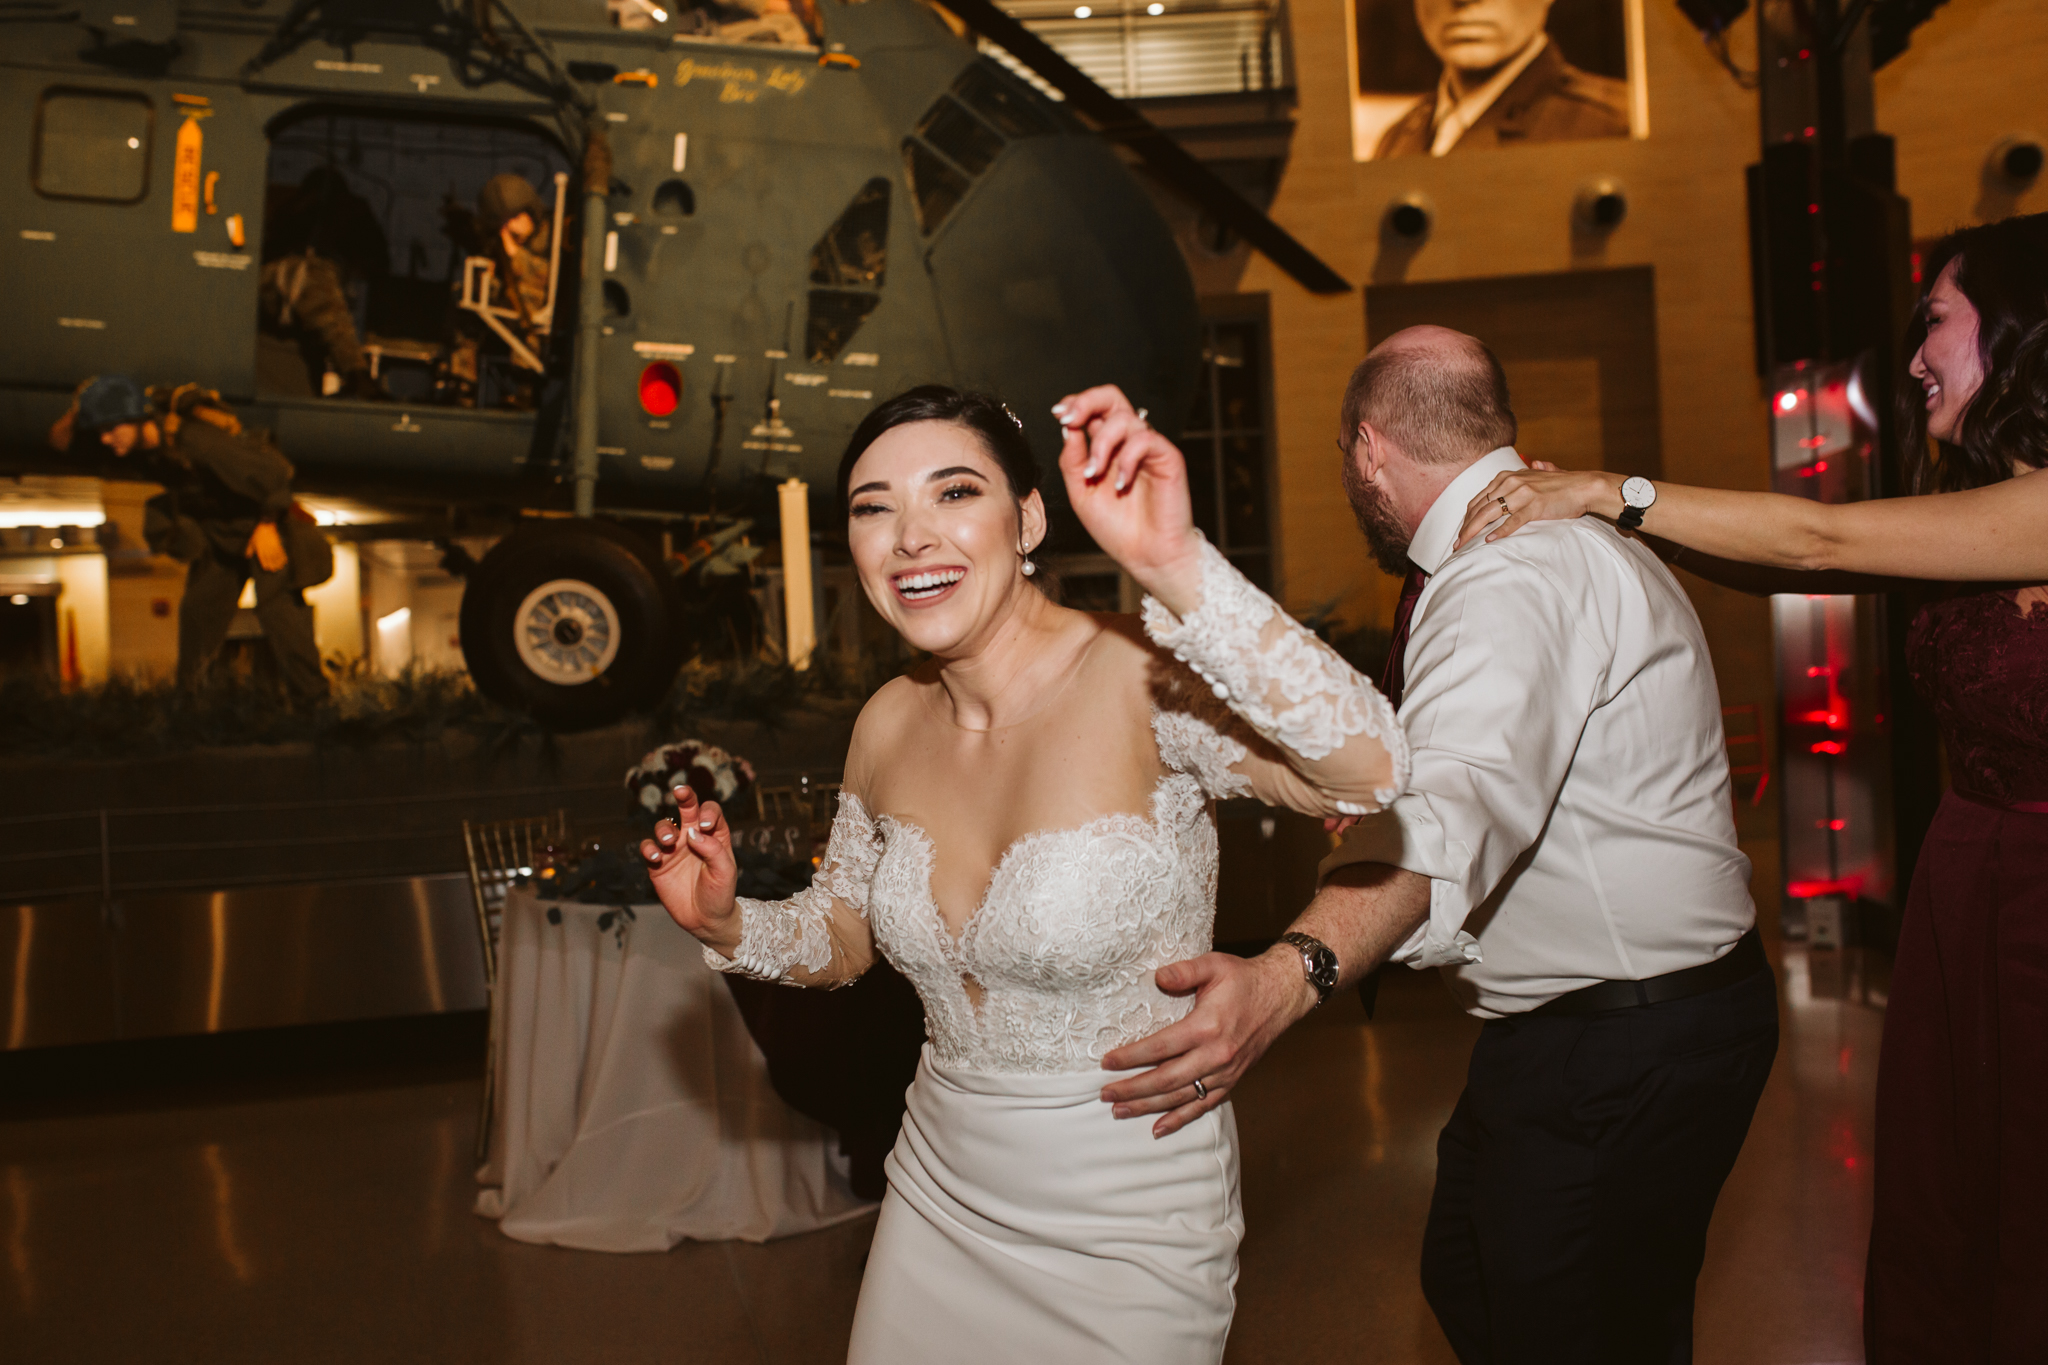 solinsky_wedding_national_museum_of_marine_corp-56.jpg